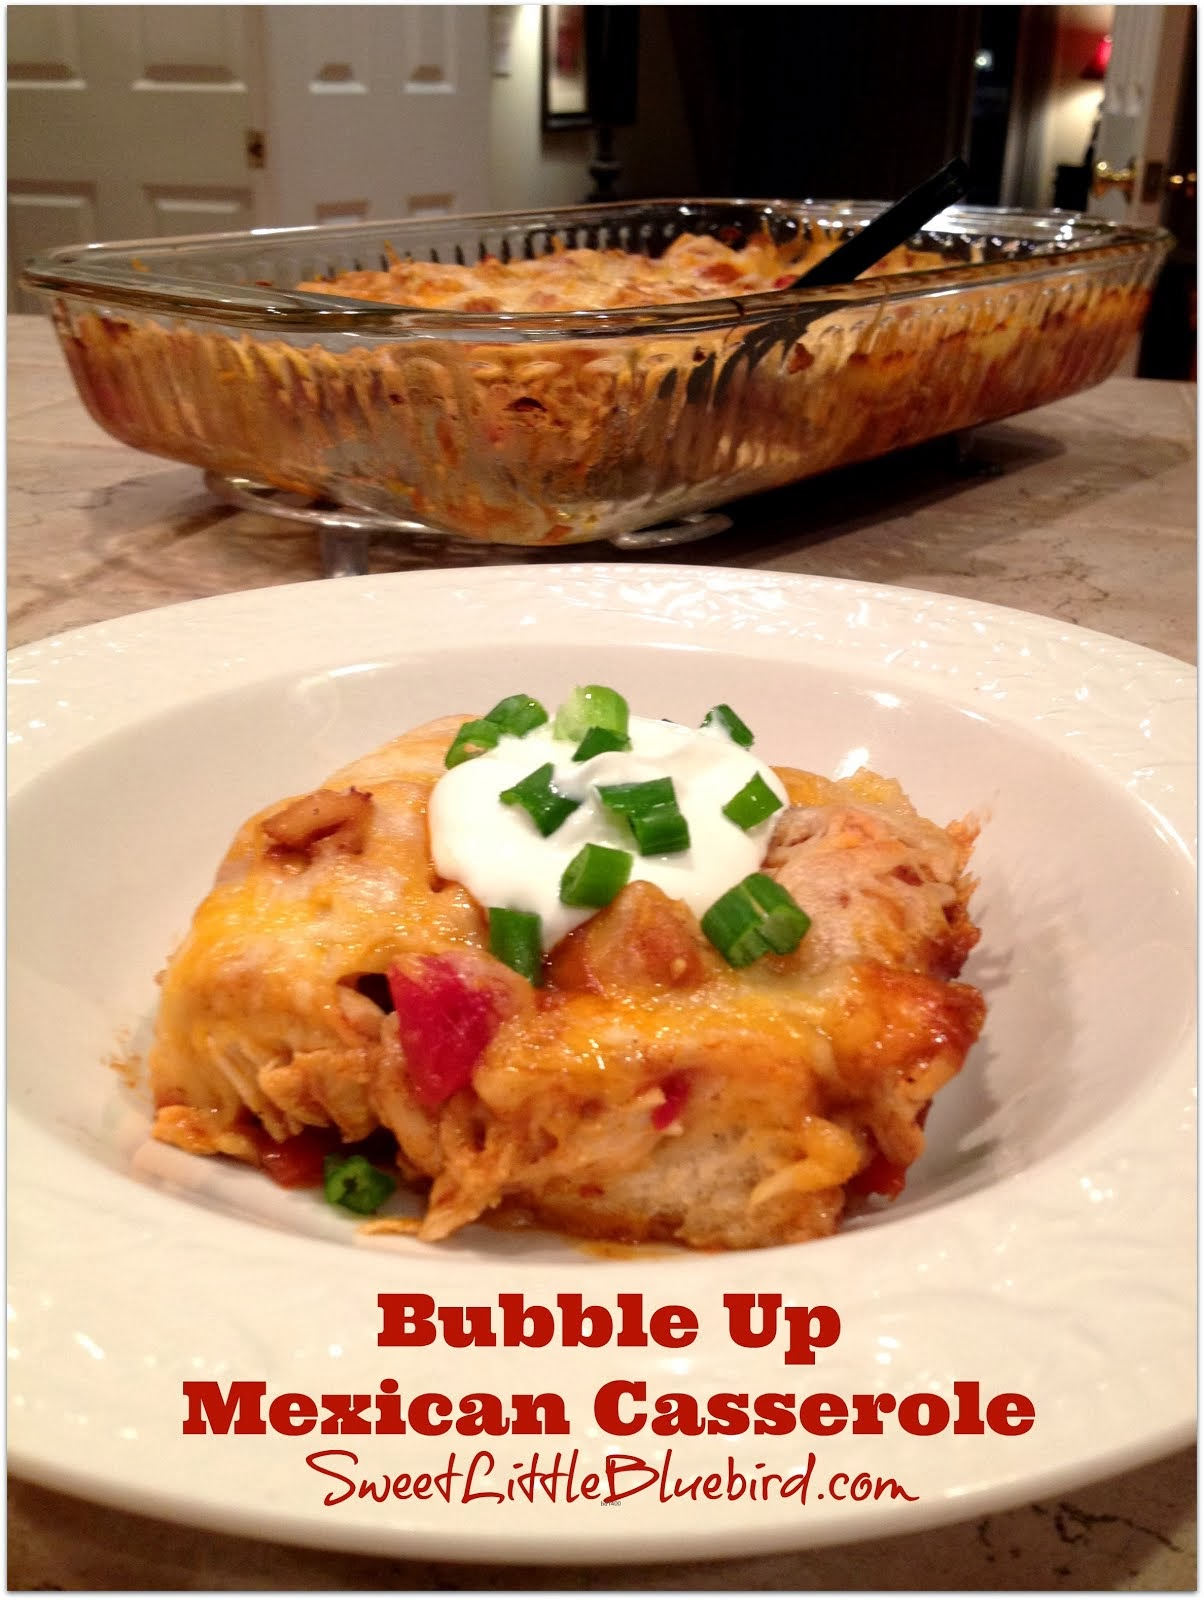 Bubble Up Mexican Casserole - Only 5 Ingredients